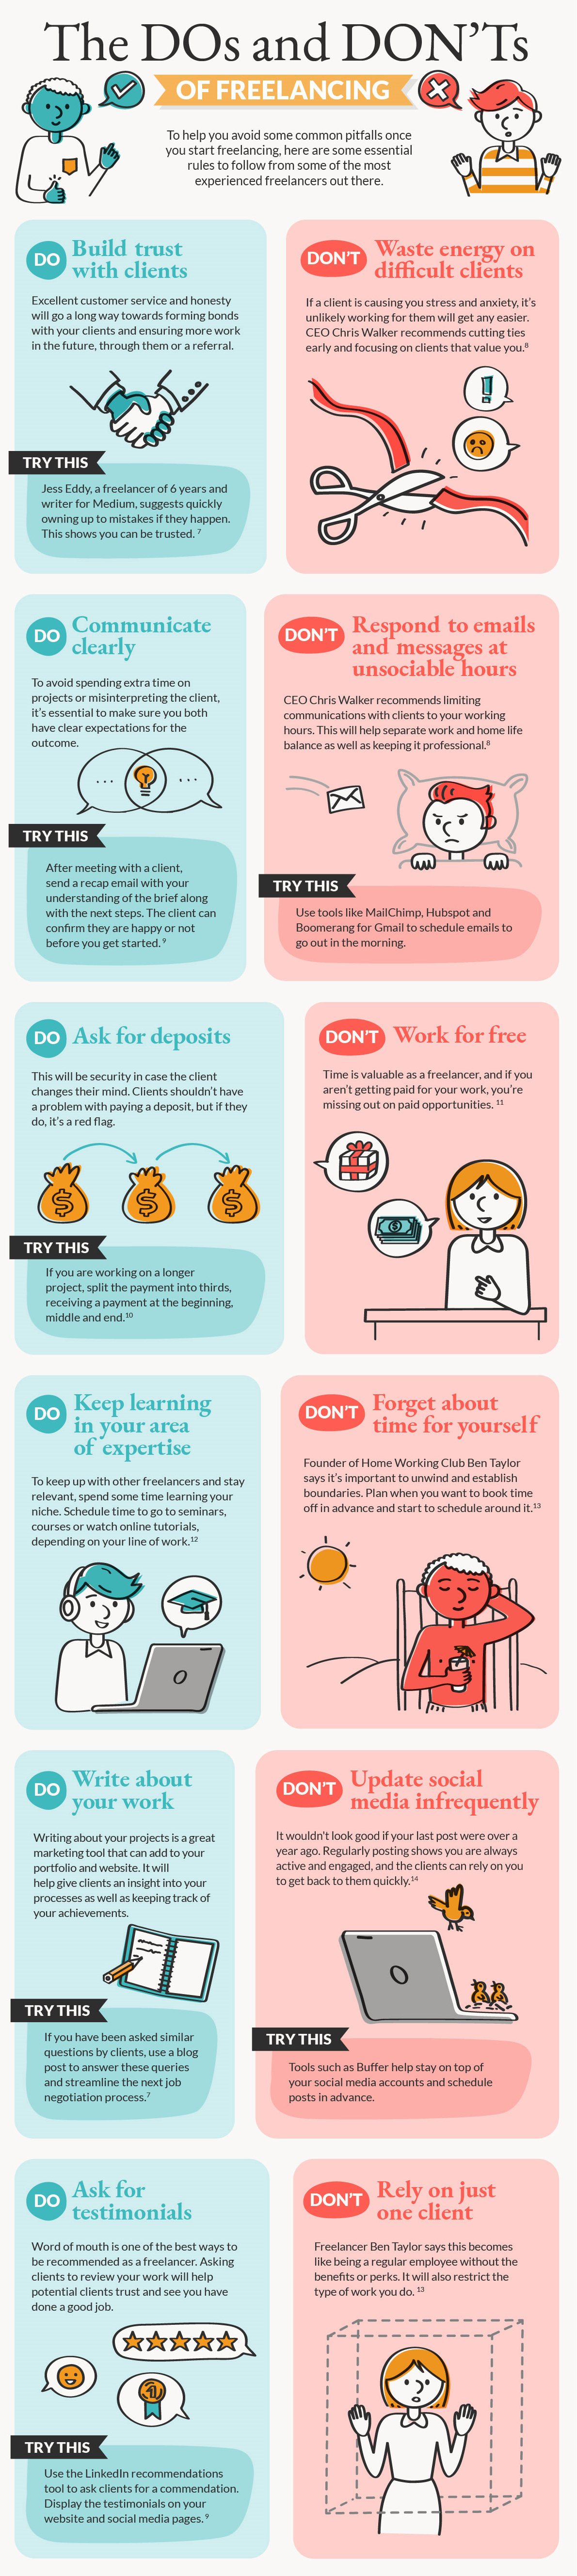 Infographic: Do and Don'ts of freelancing